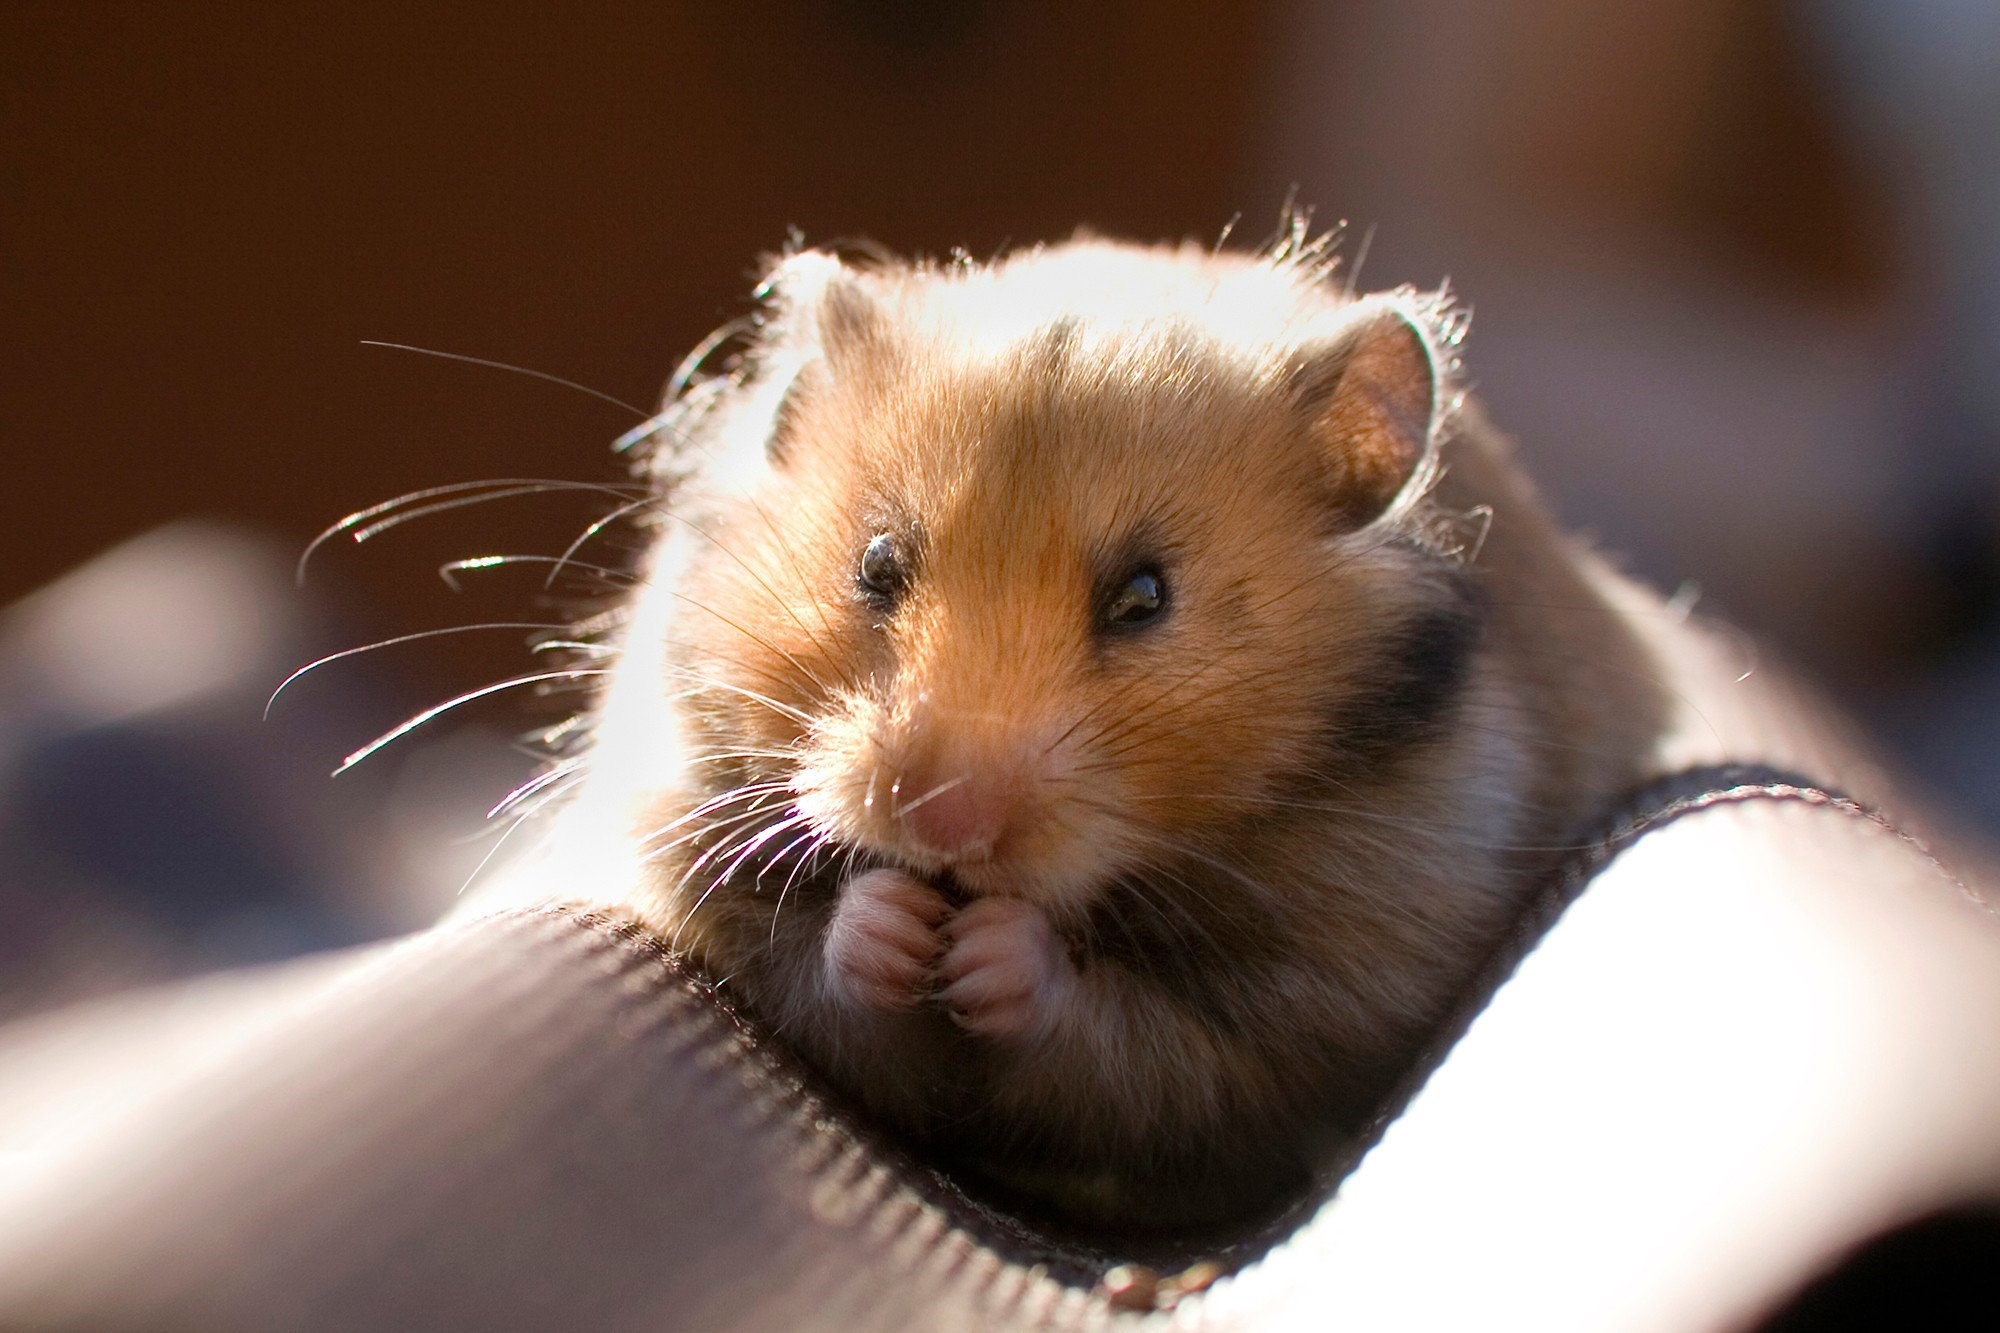 College student says airline made her flush prized hamster down toilet